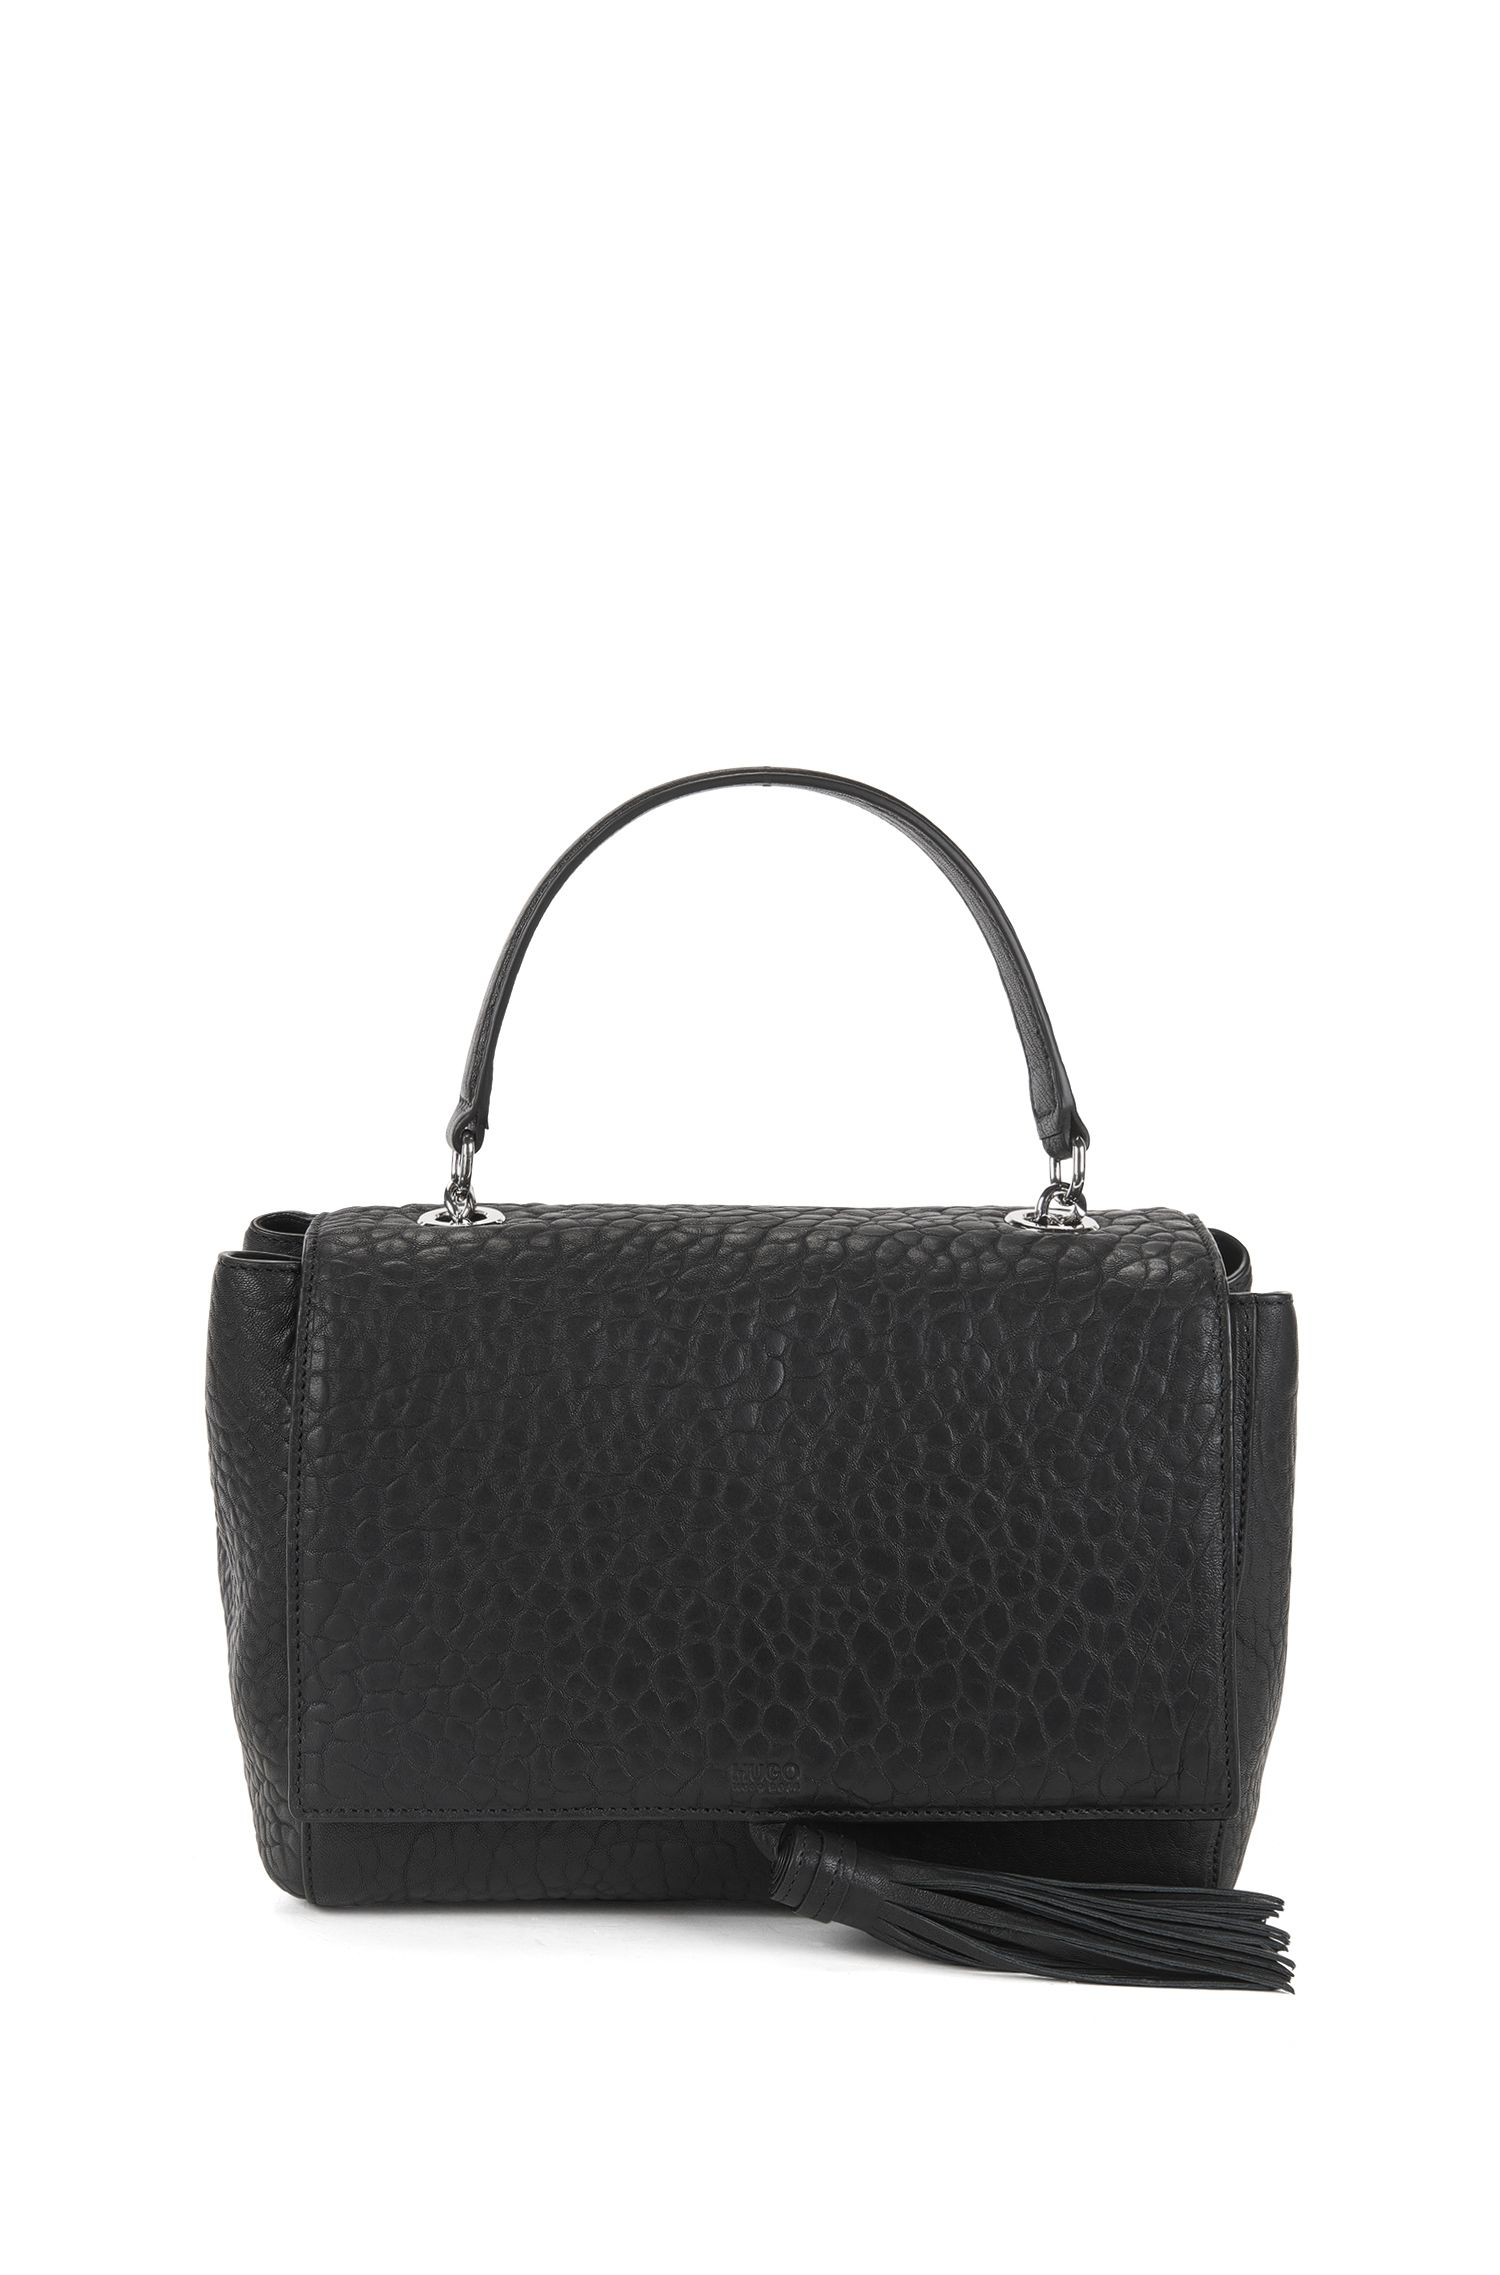 Top-handle handbag in Italian leather